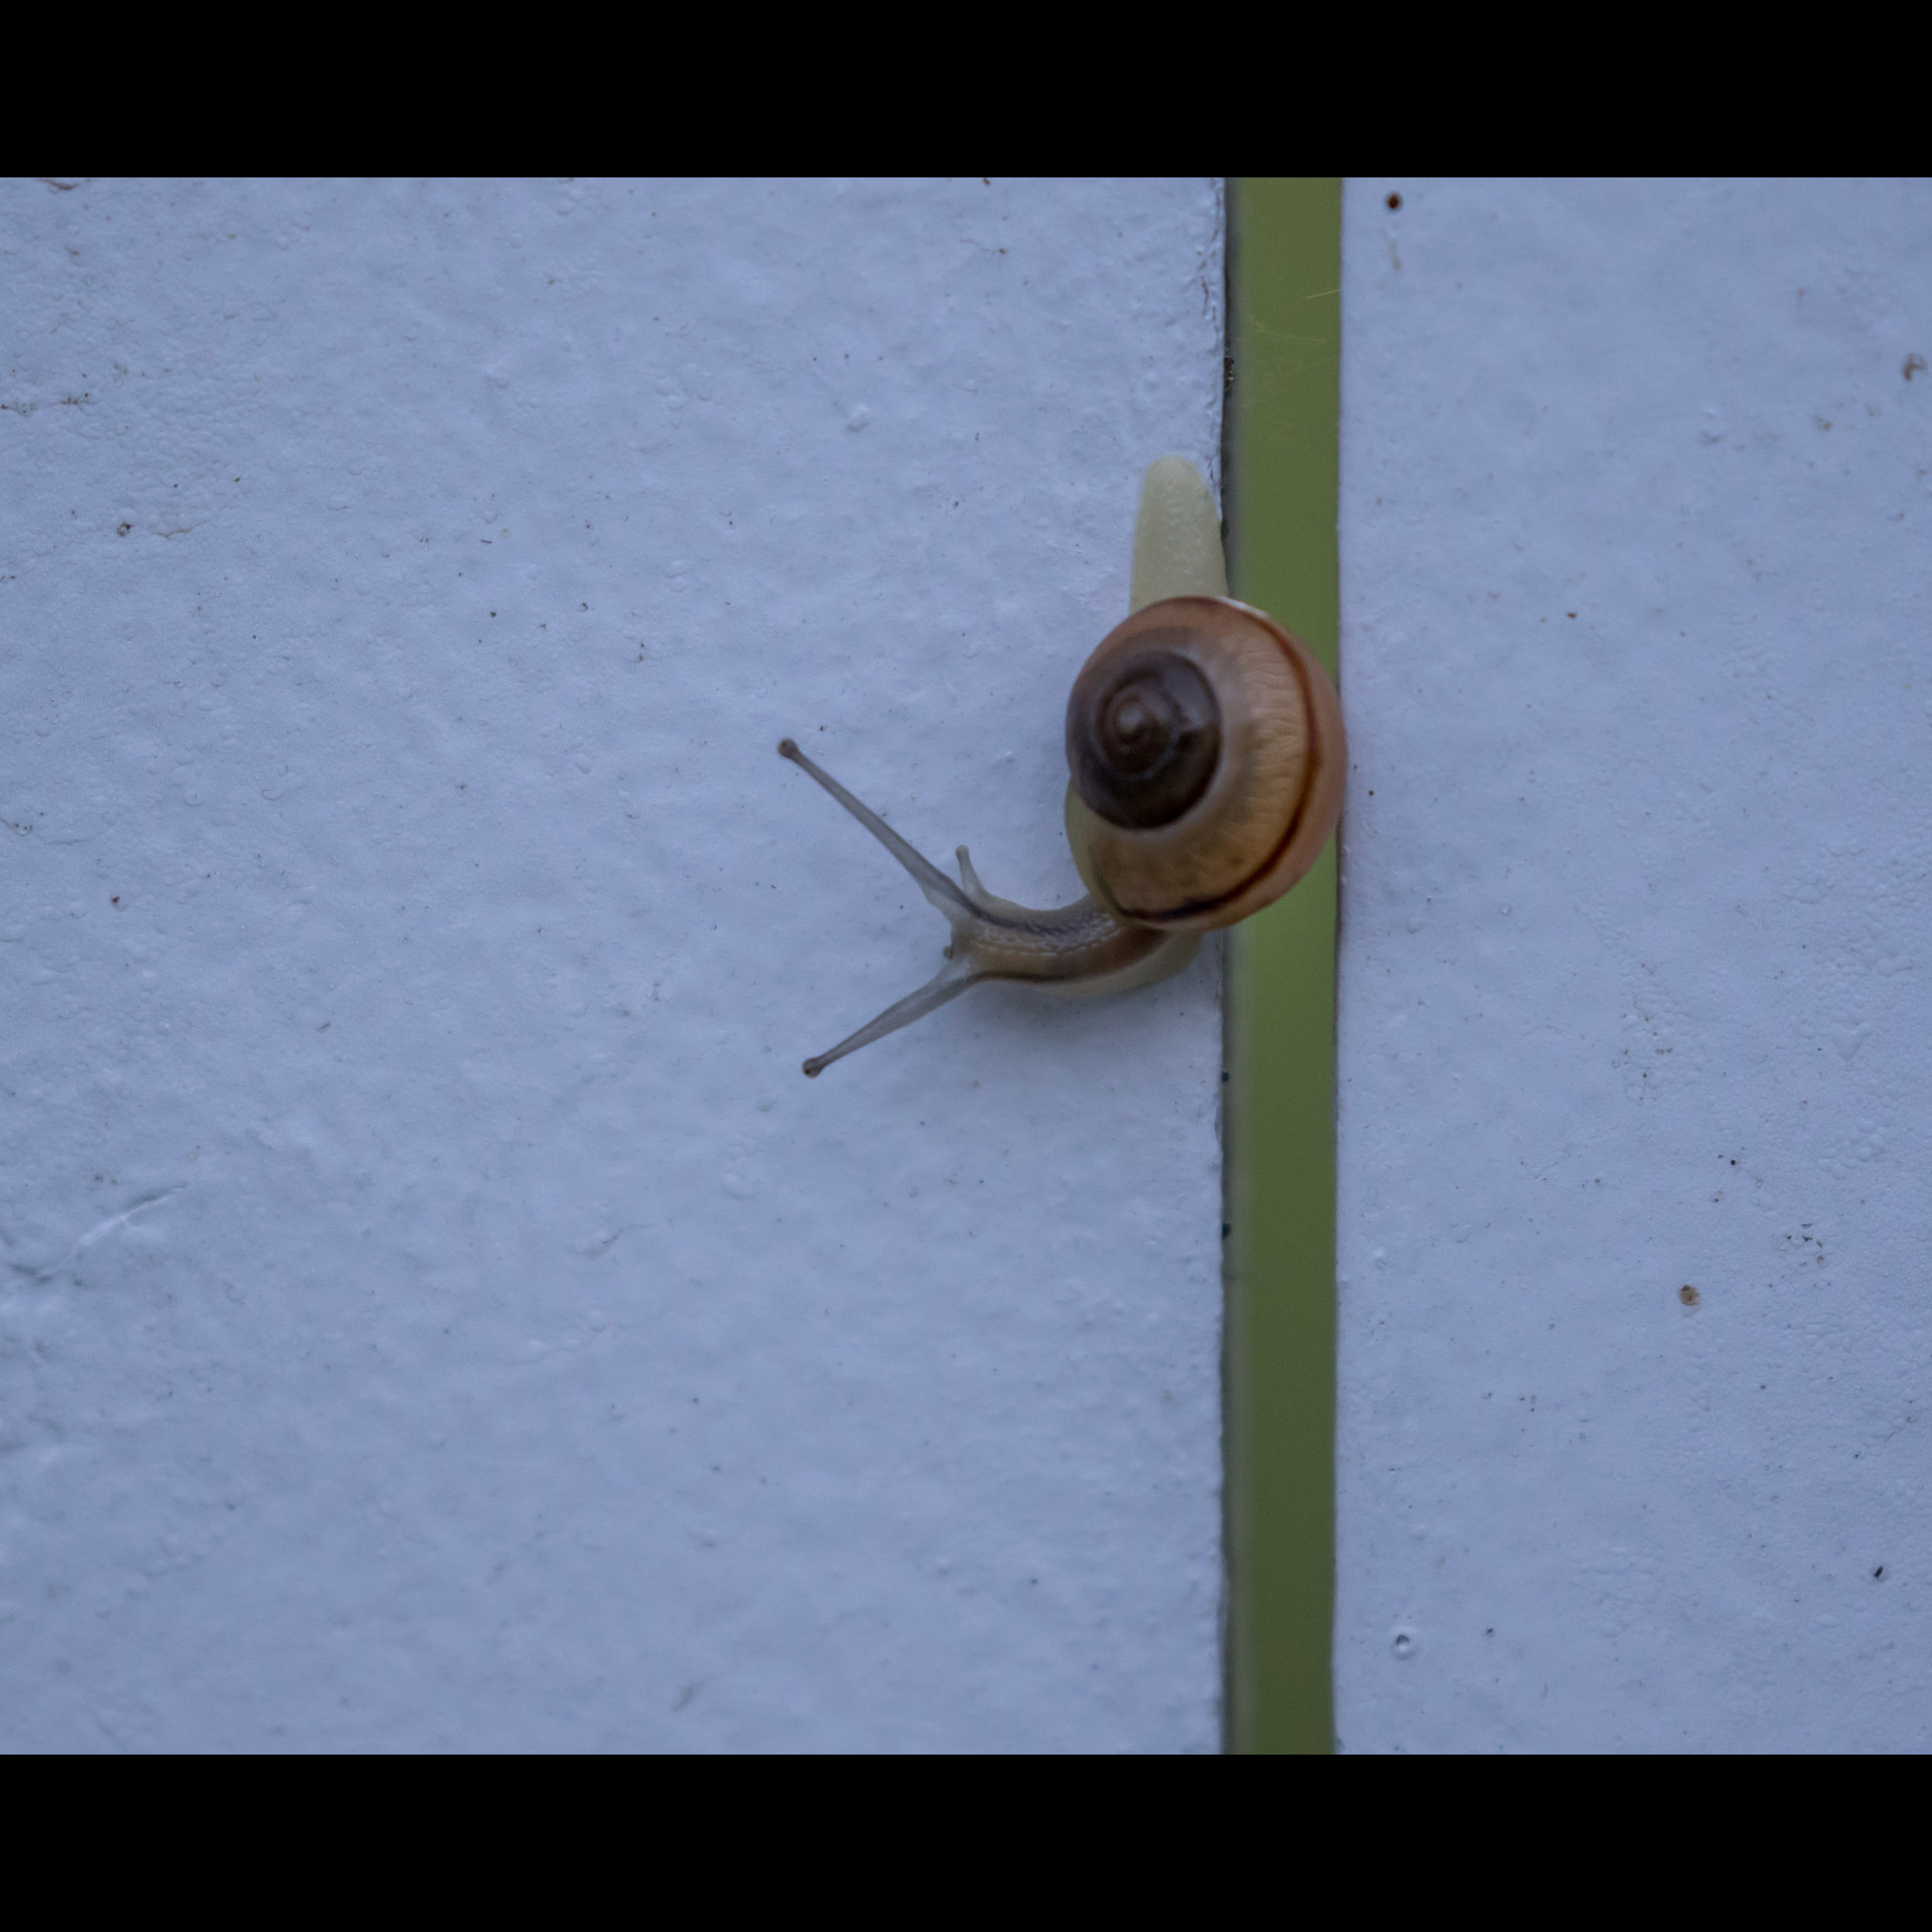 9.22 SNAIL ON THE FENCE